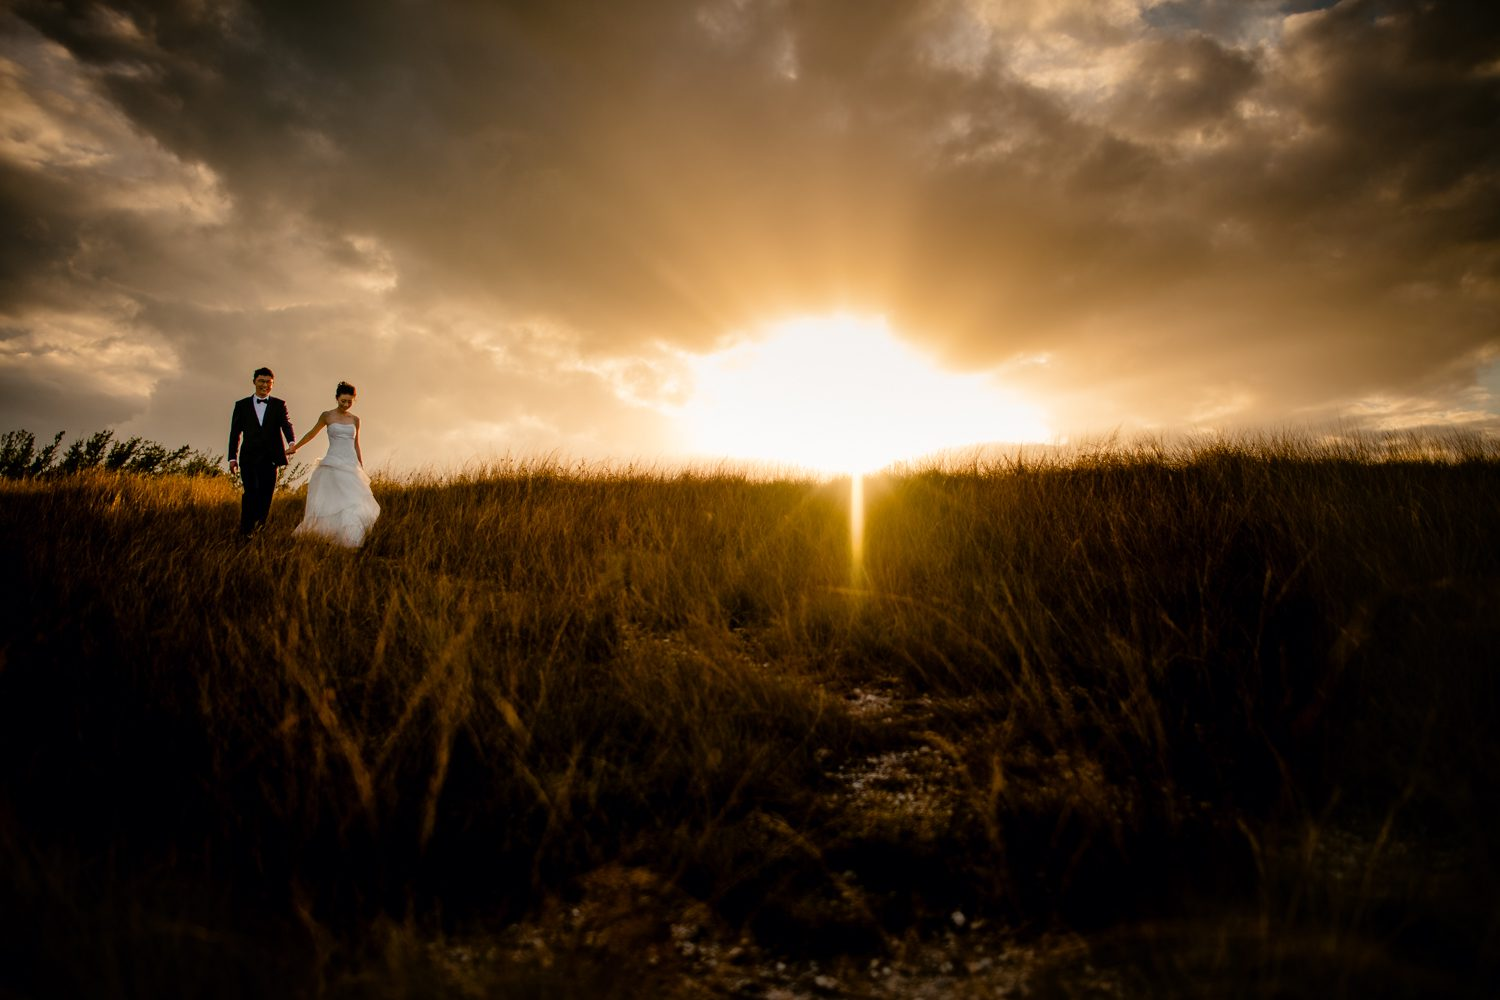 Bride and groom holding hands in a field at sunset at fort zachary taylor